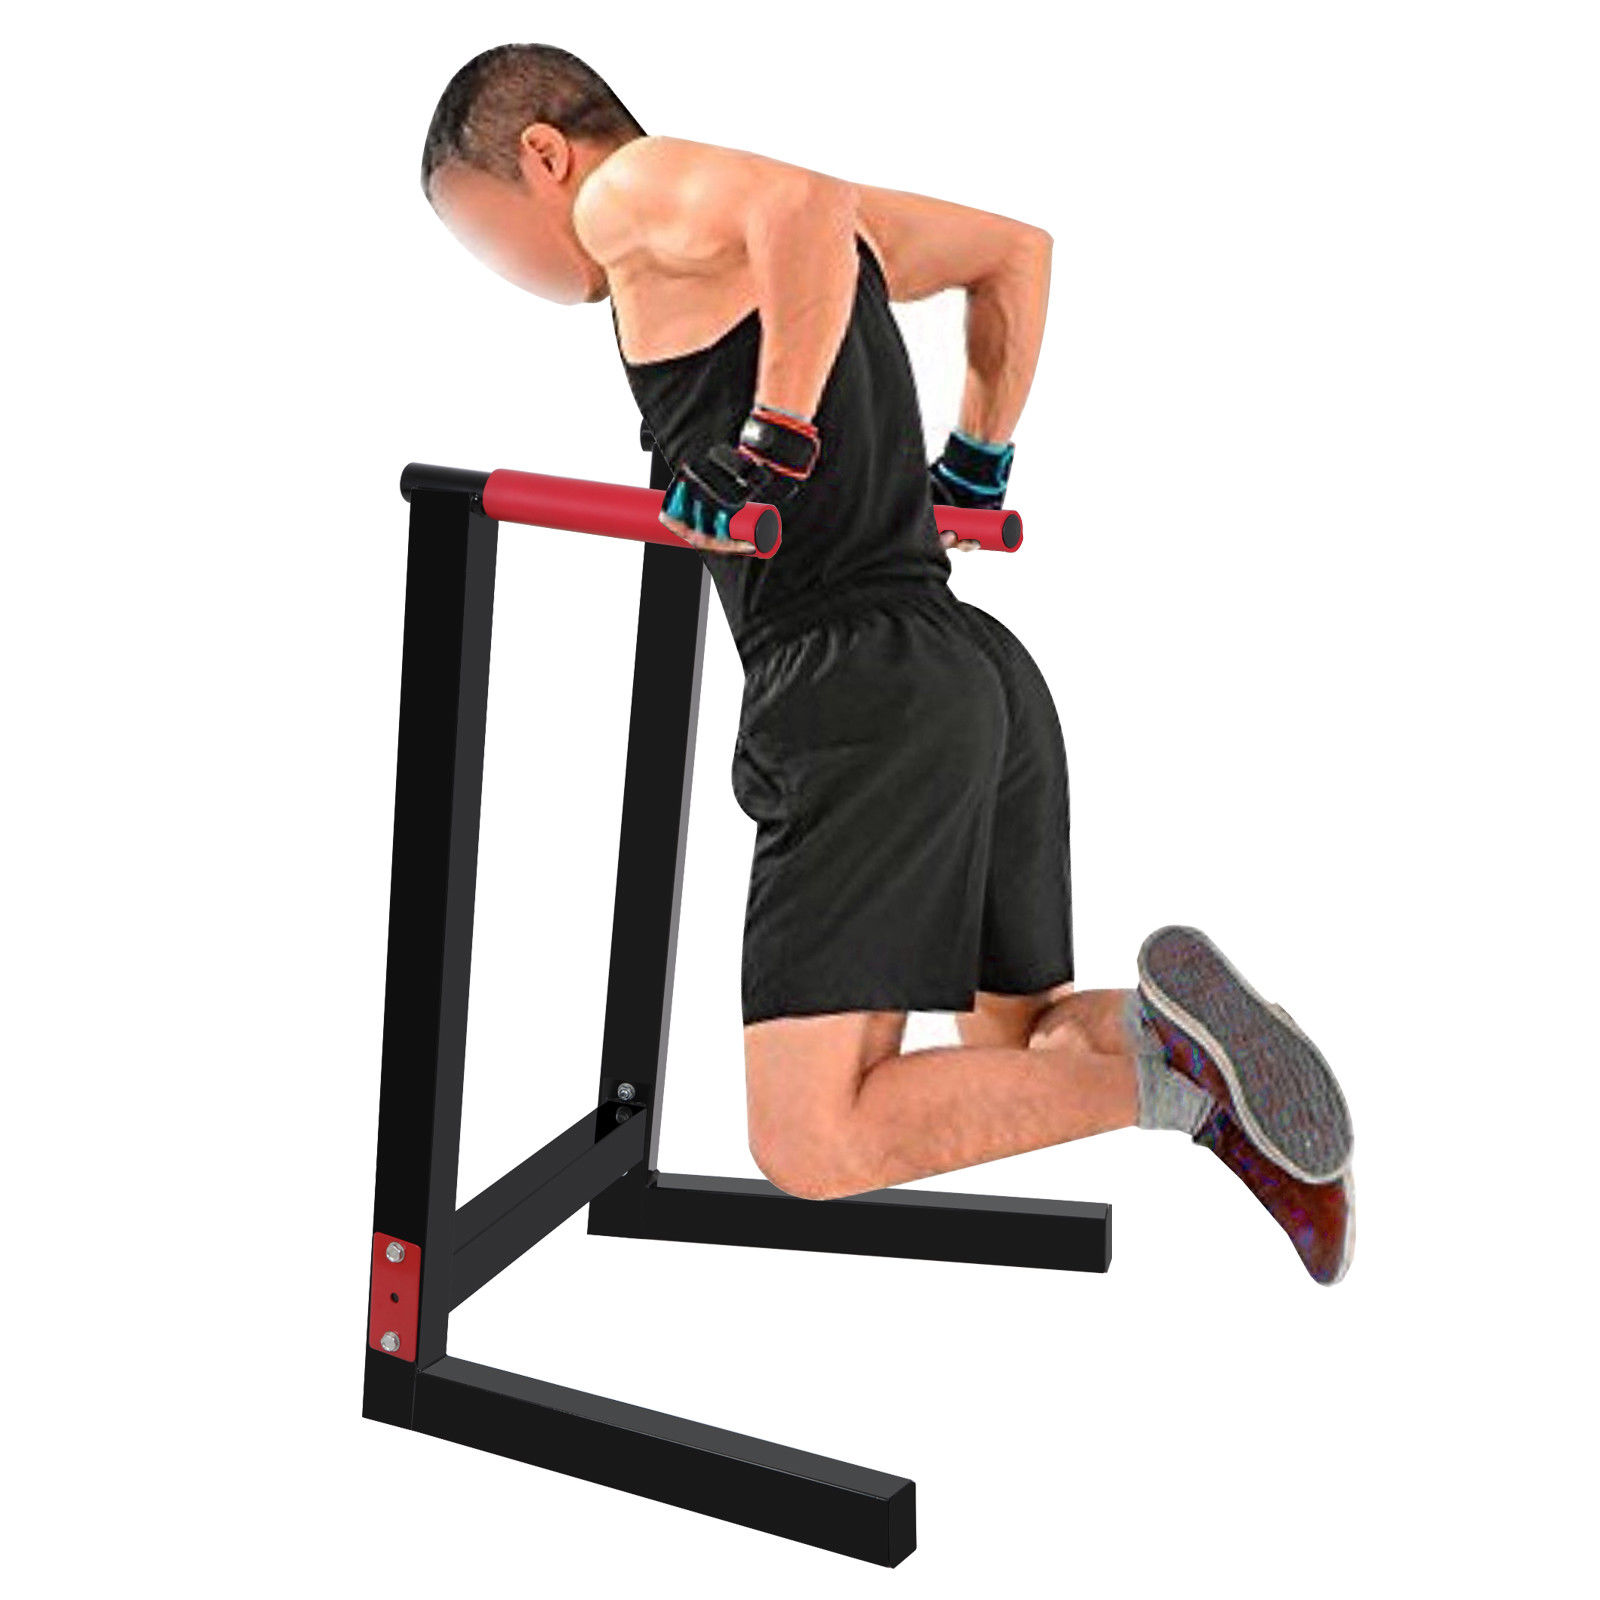 Zeny Heavy Duty Steel Dip Stand Parallel Bar Fitness Home Gym Dipping Station 440LBs